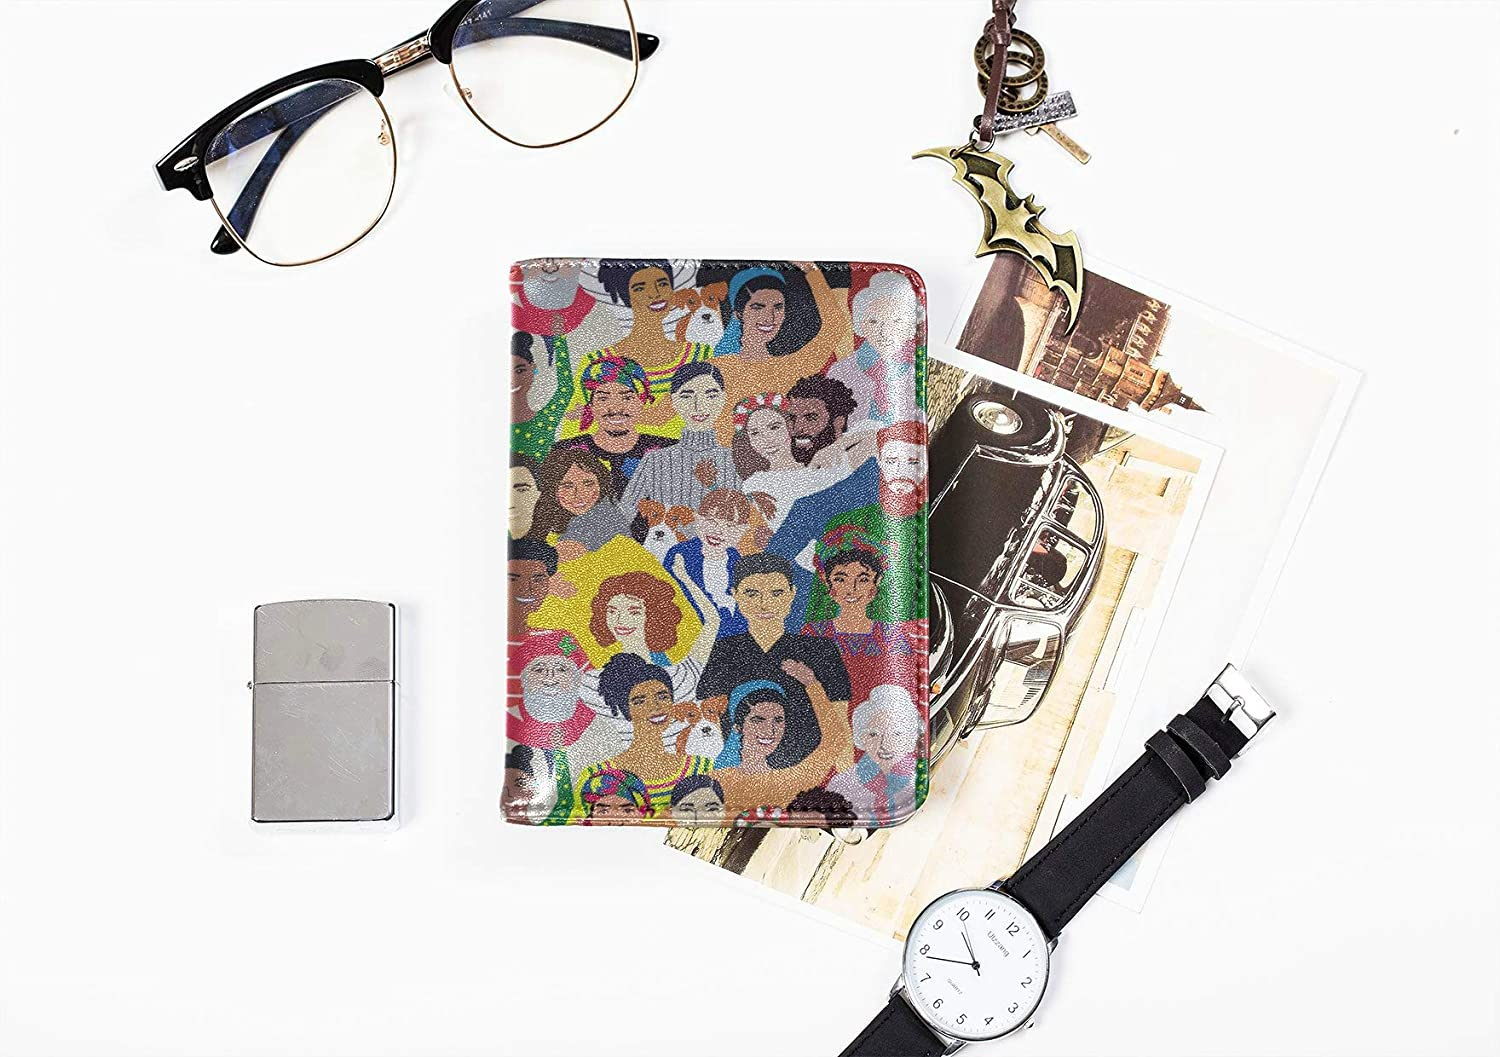 Passport Cover Large Cute Fasghion Character Painting Personalized Passport Cover Multi Purpose Print Women Passport Cover Travel Wallets For Unisex 5.51x4.37 Inch